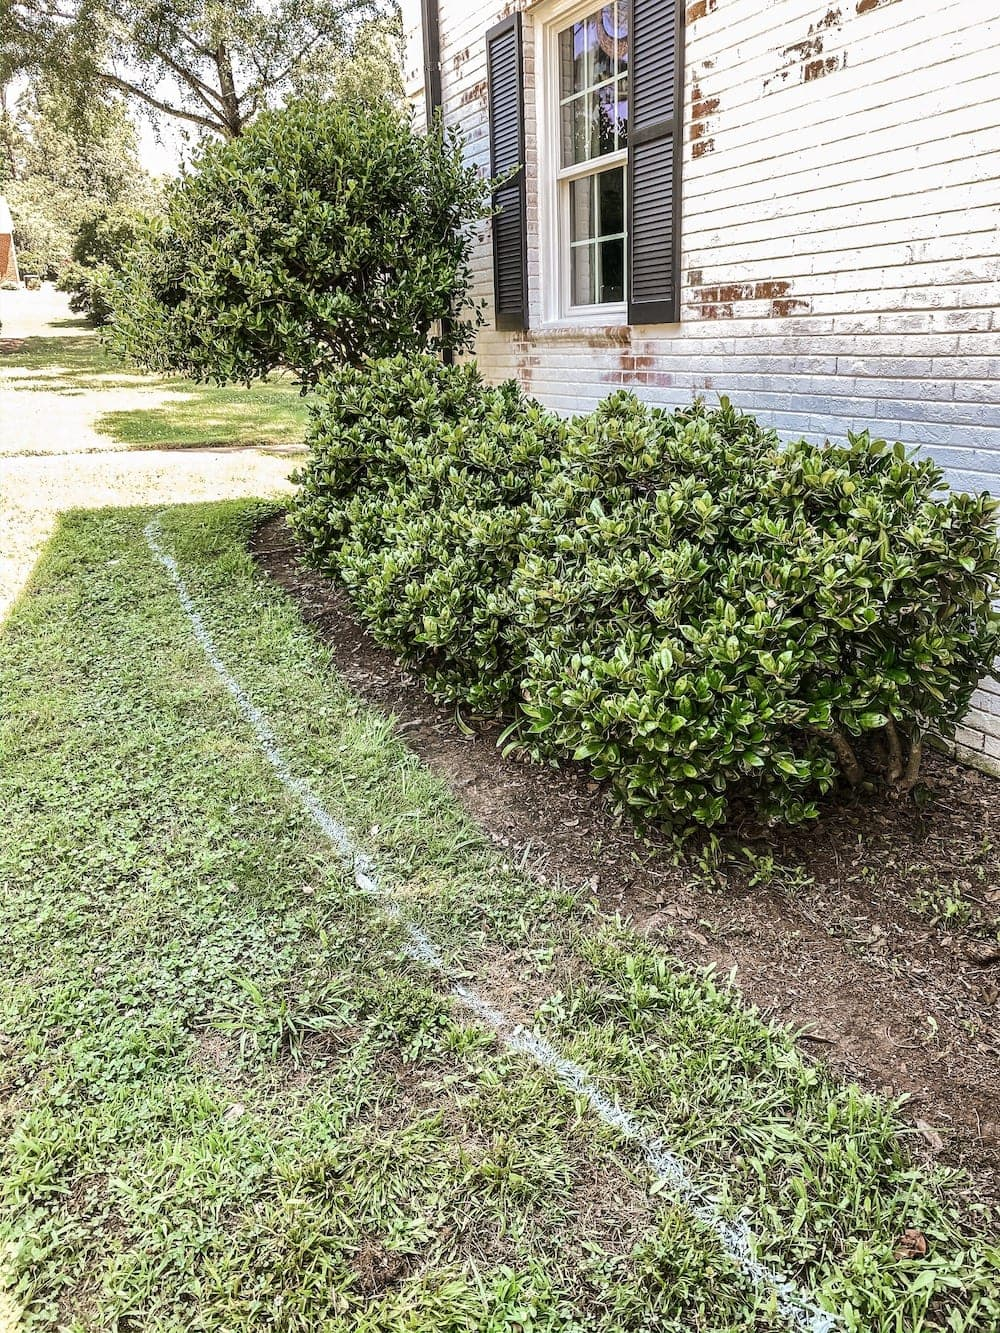 DIY Flower Bed Makeover | A step-by-step DIY tutorial to take your flower beds from drab to fab to increase curb appeal, plus all the best tools to get the job done.